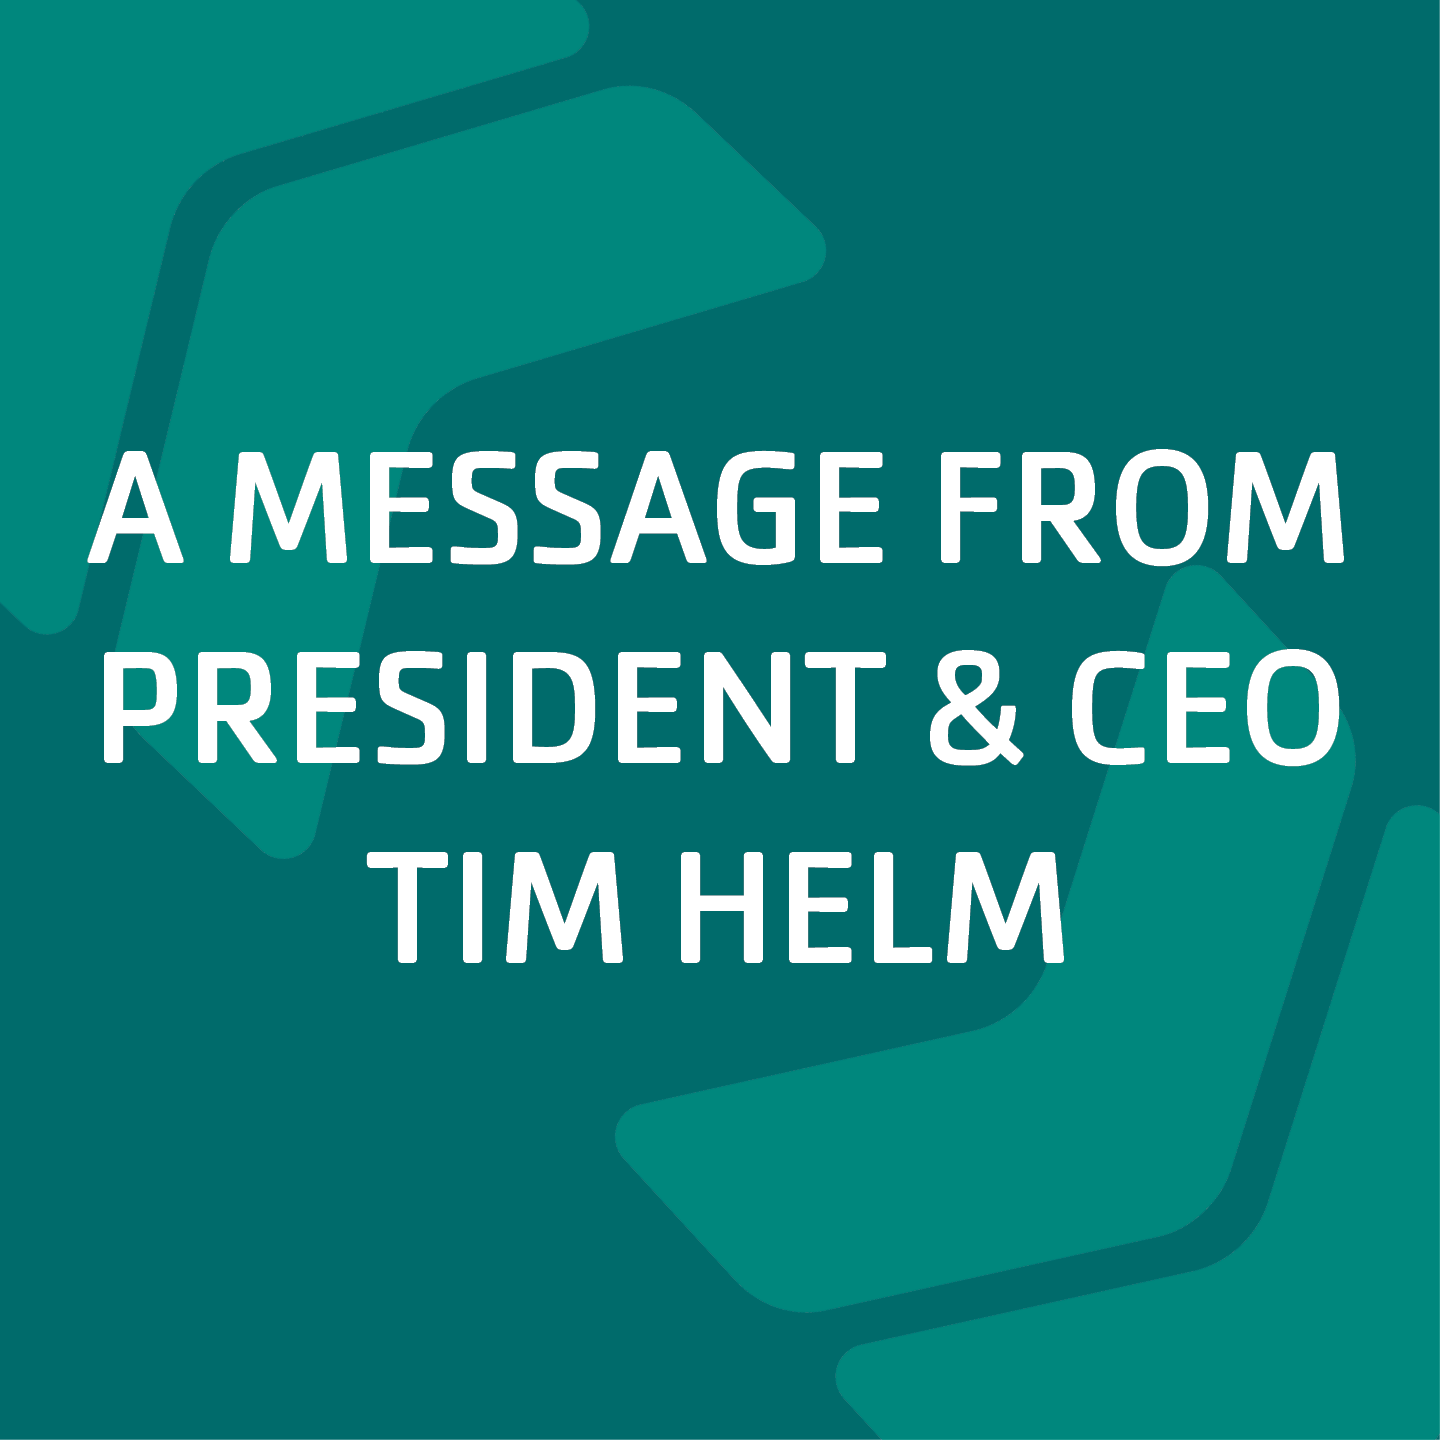 a message from president and ceo tim helm